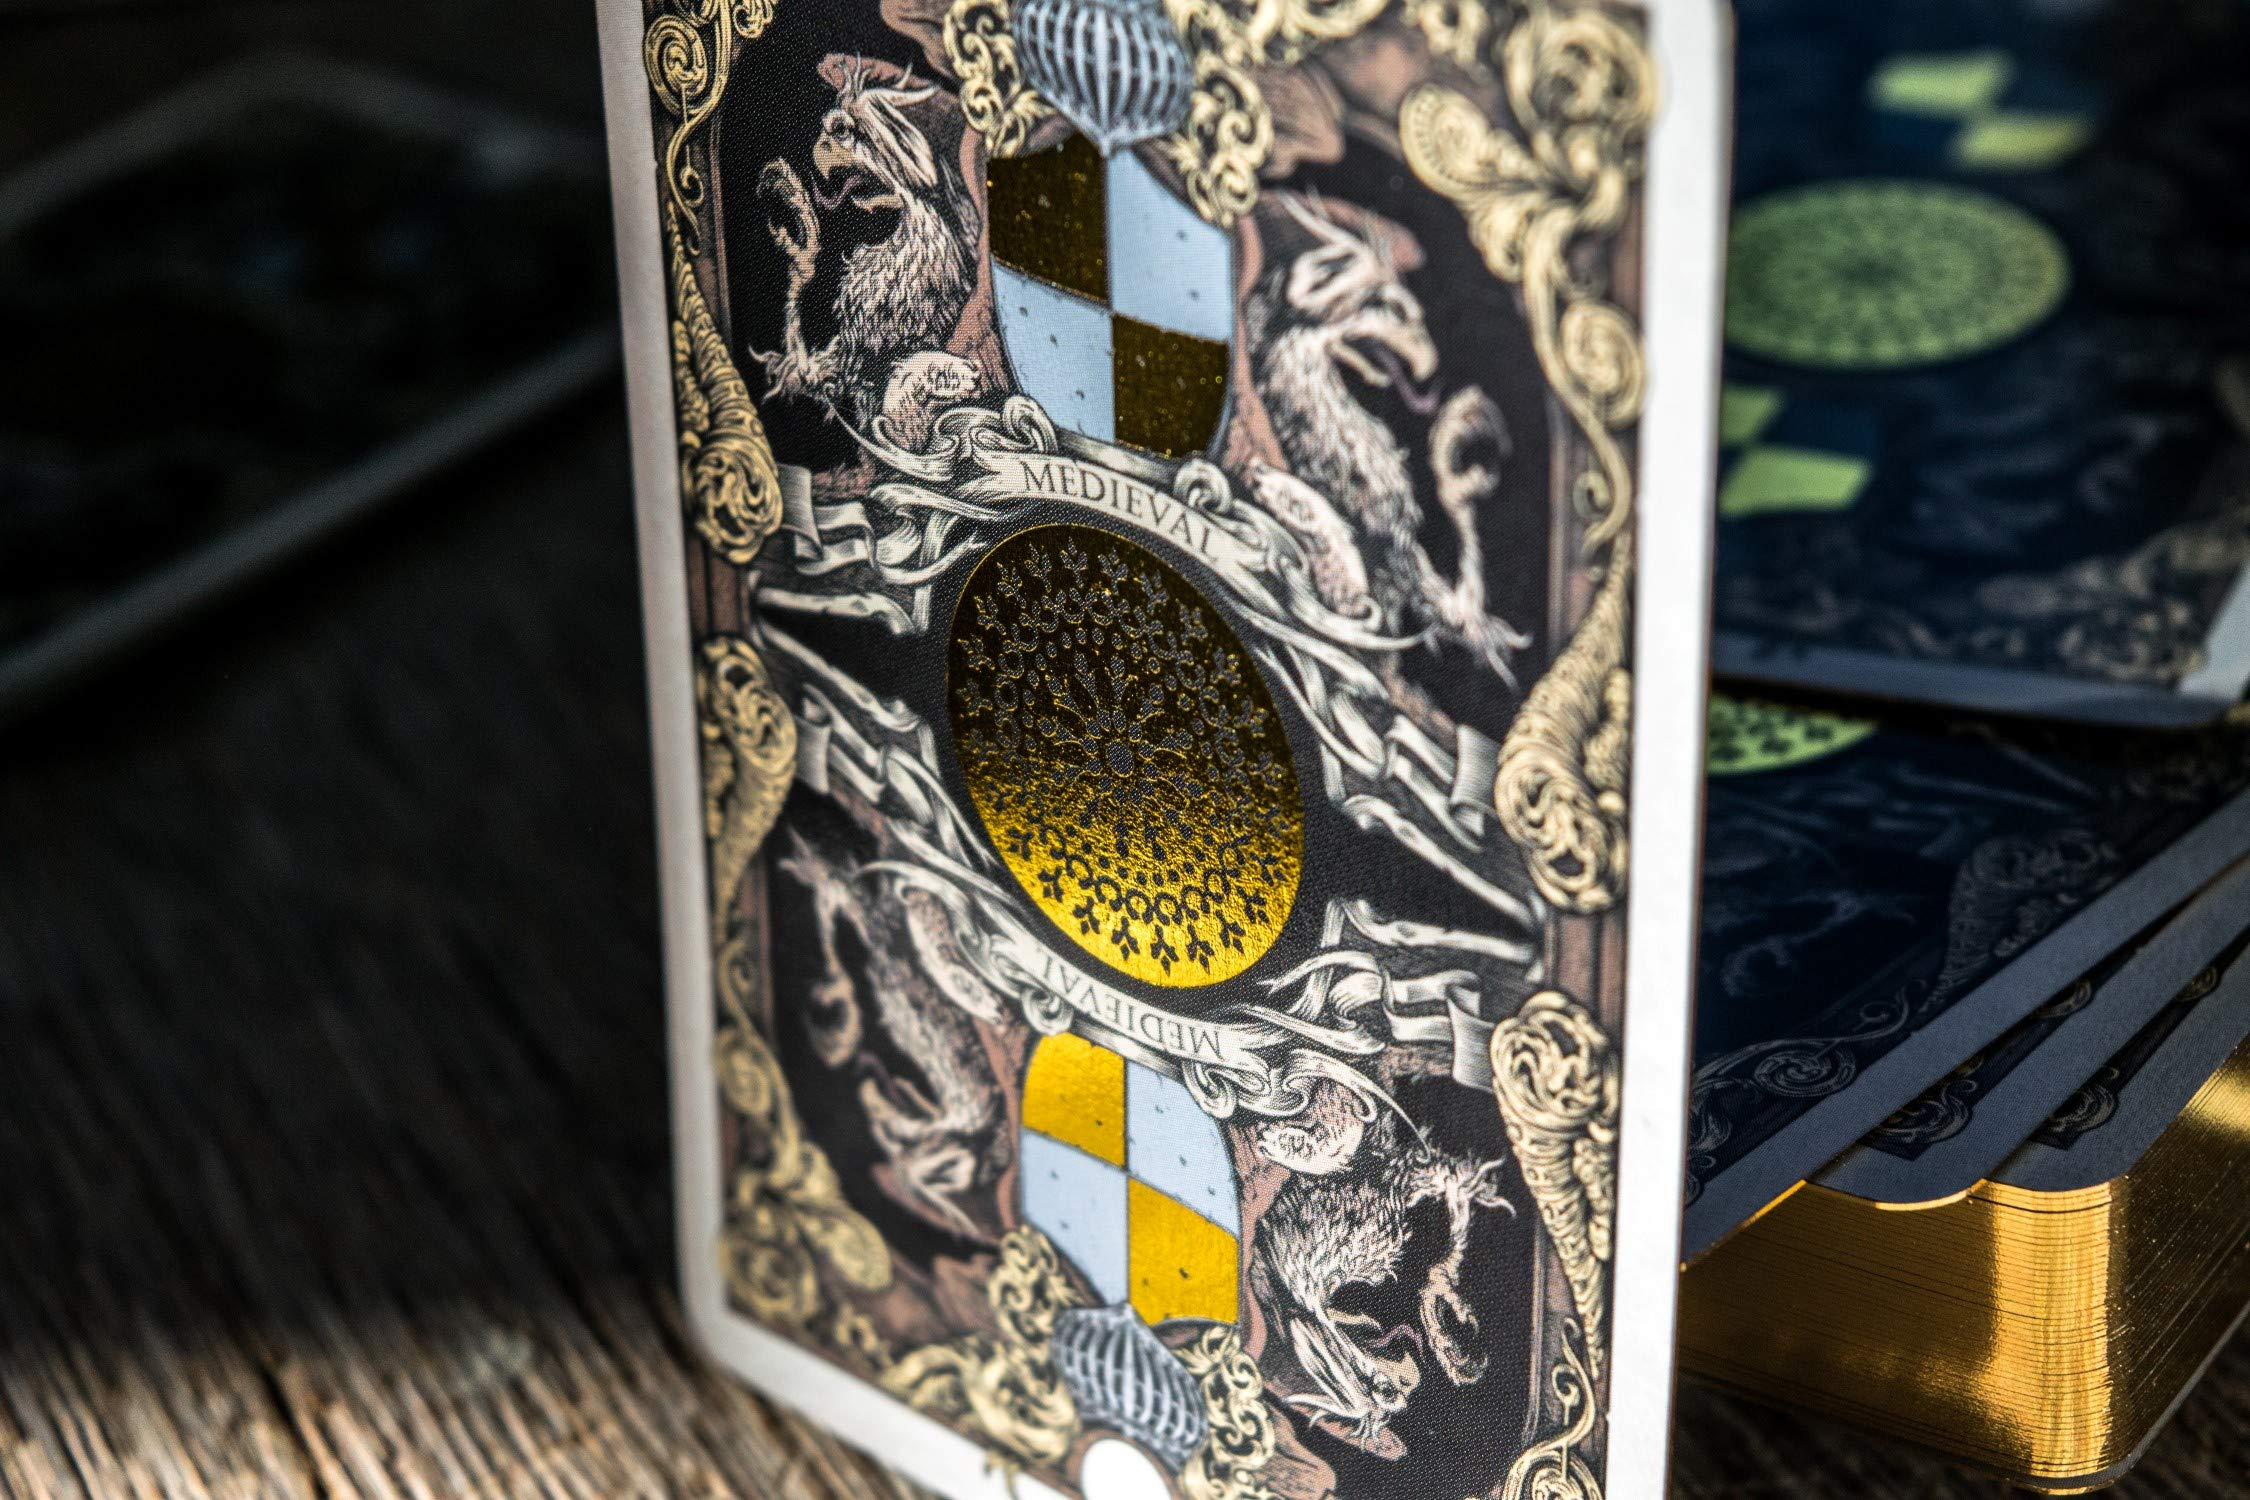 Medieval Royal Playing Cards, Gold Deck of Cards, Cool Magic Cards, Best Poker Cards, Unique Illustrated Foil Colors for Kids & Adults, Playing Card Decks Games, Standard Size by Elephant Playing Cards (Image #3)